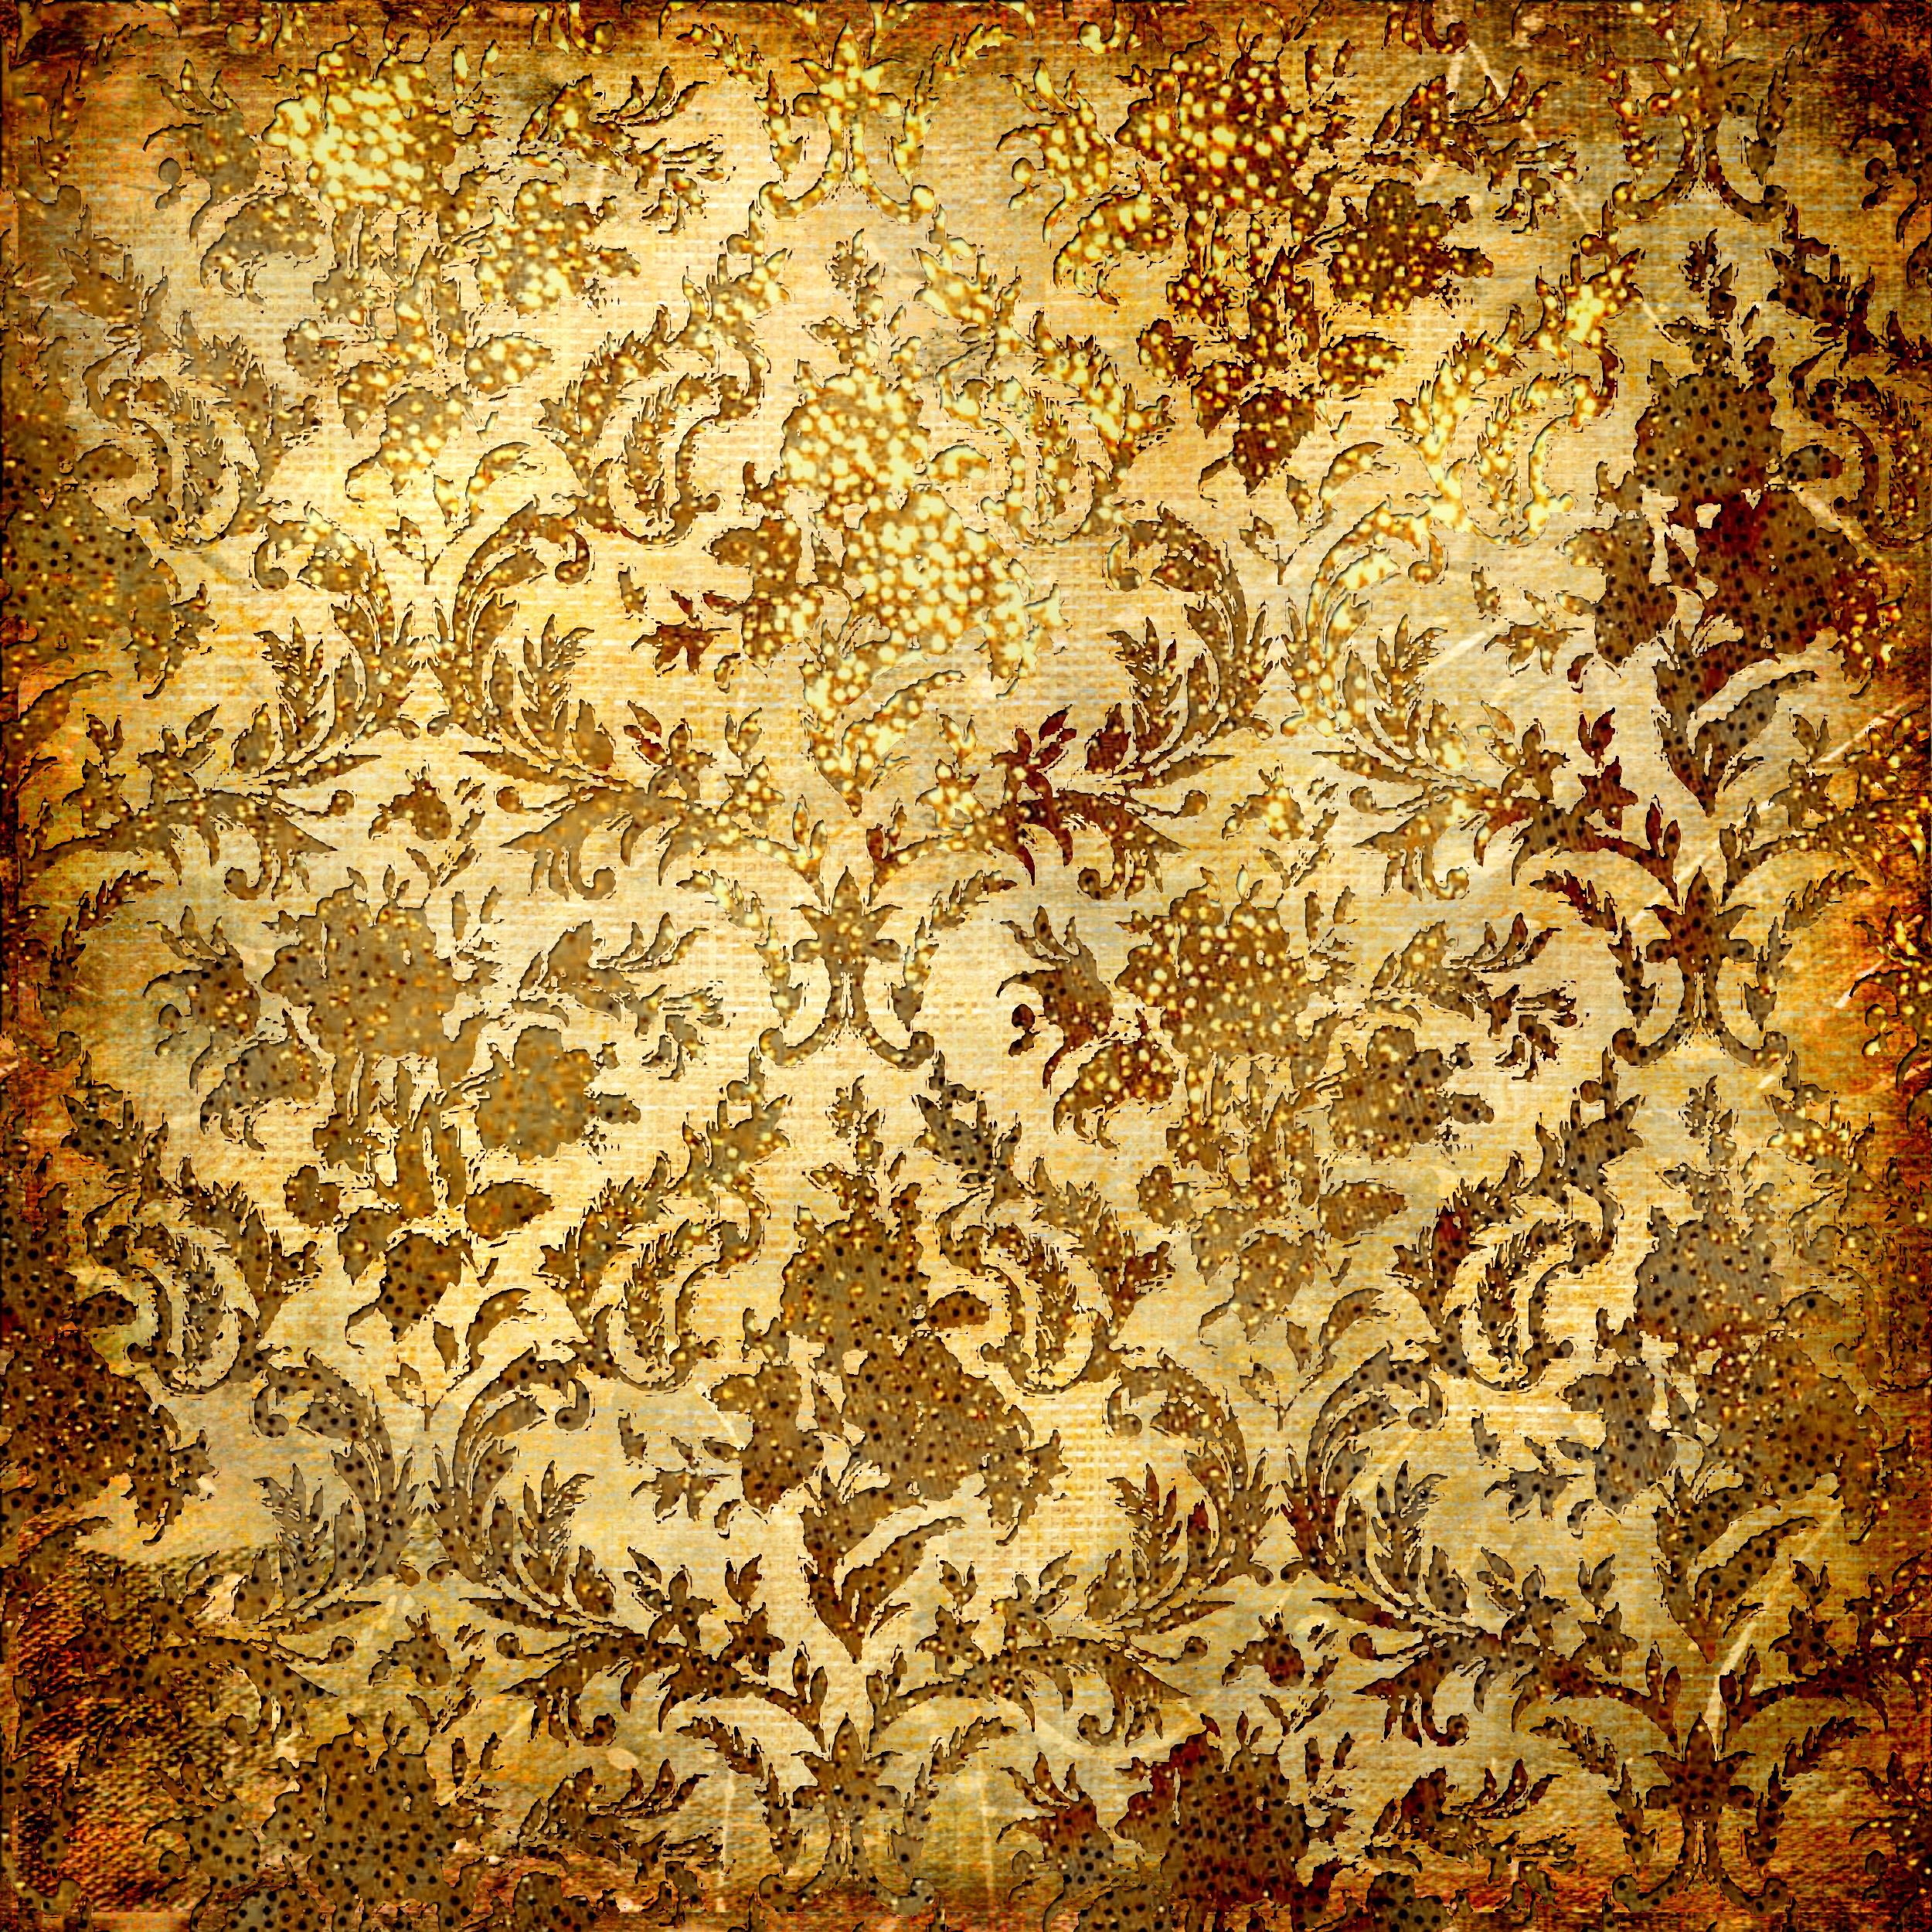 Published December 23 2011 in Gold Dust Woman Full size is 2500 2500x2500